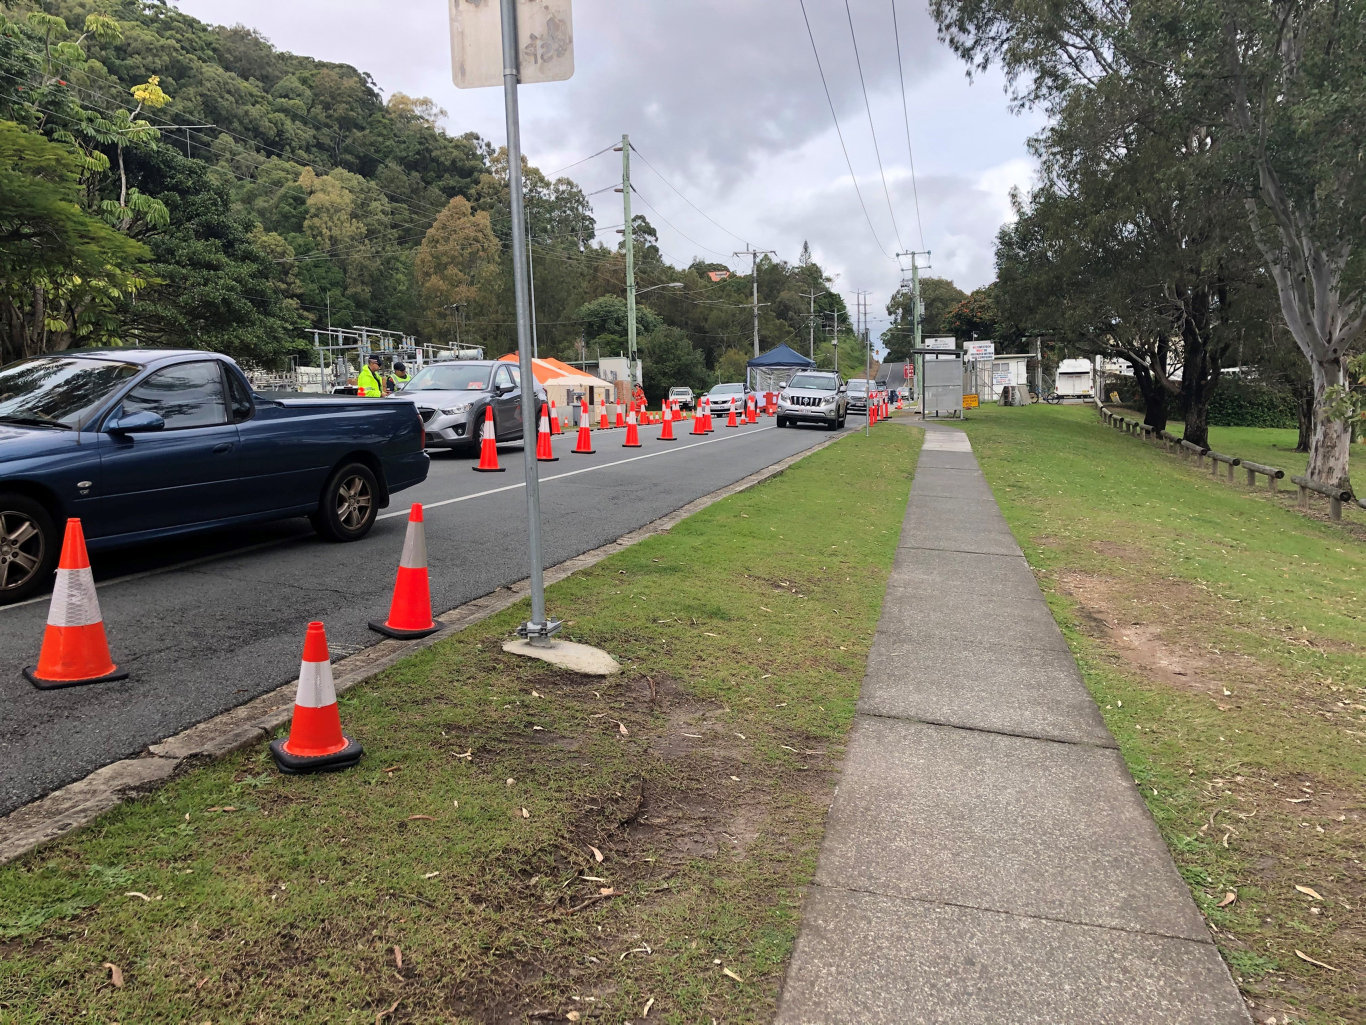 The QLD border reopened today. Traffic was moving smoothly at the crossing for local residents at Ducat St, Tweed Heads.